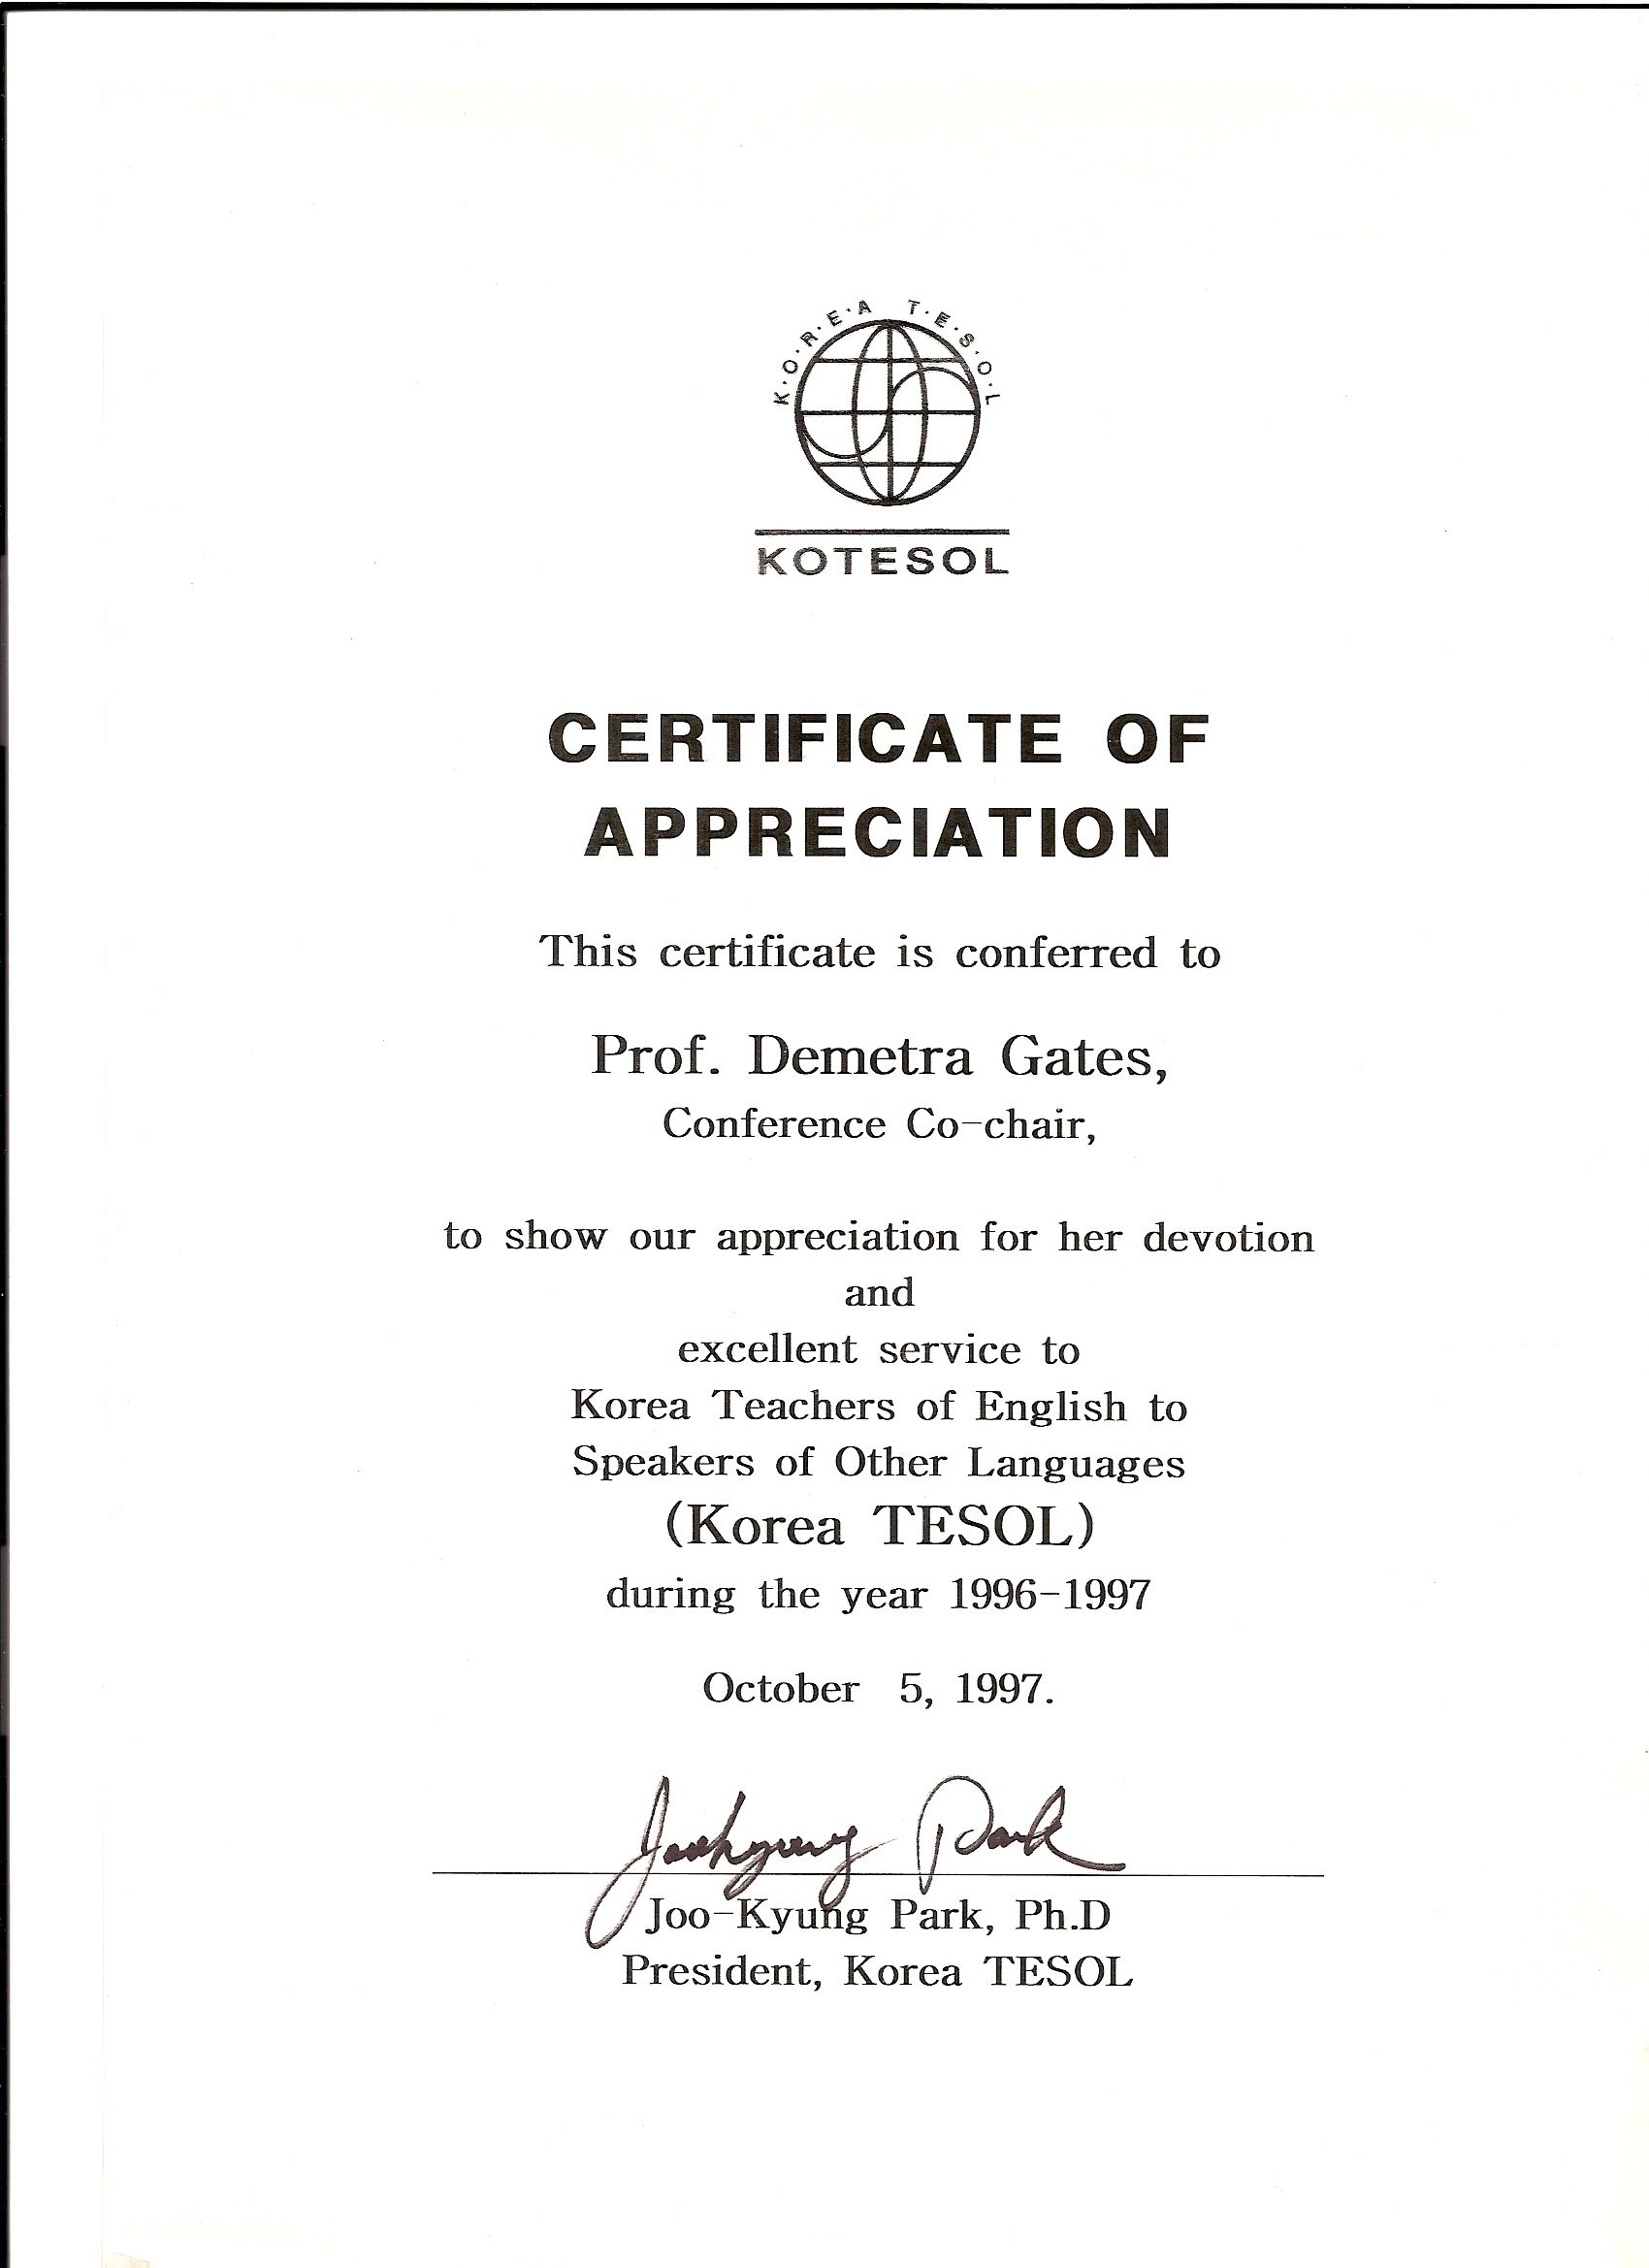 Kotesol presidential certificate of appreciation 1997 kotesol presidential certificate of appreciation conference co chair yadclub